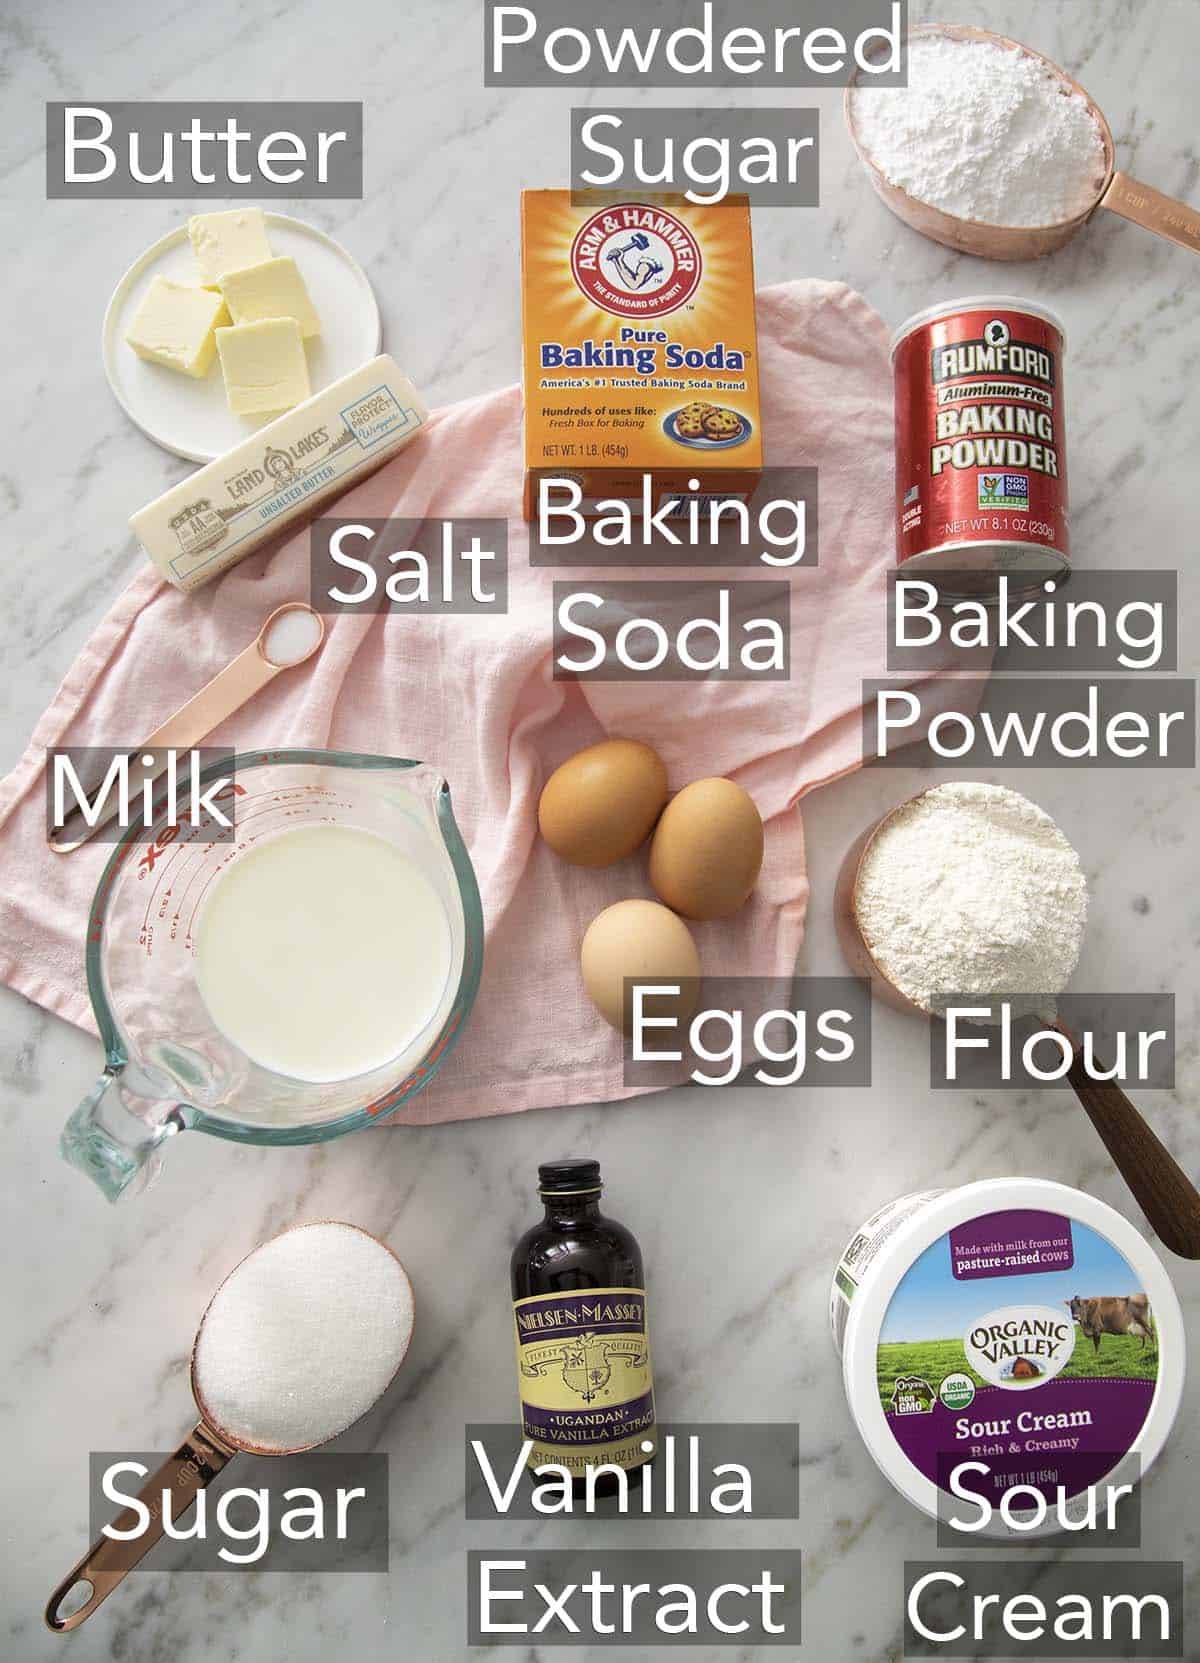 The ingredients for a vanilla cake on a marble surface.